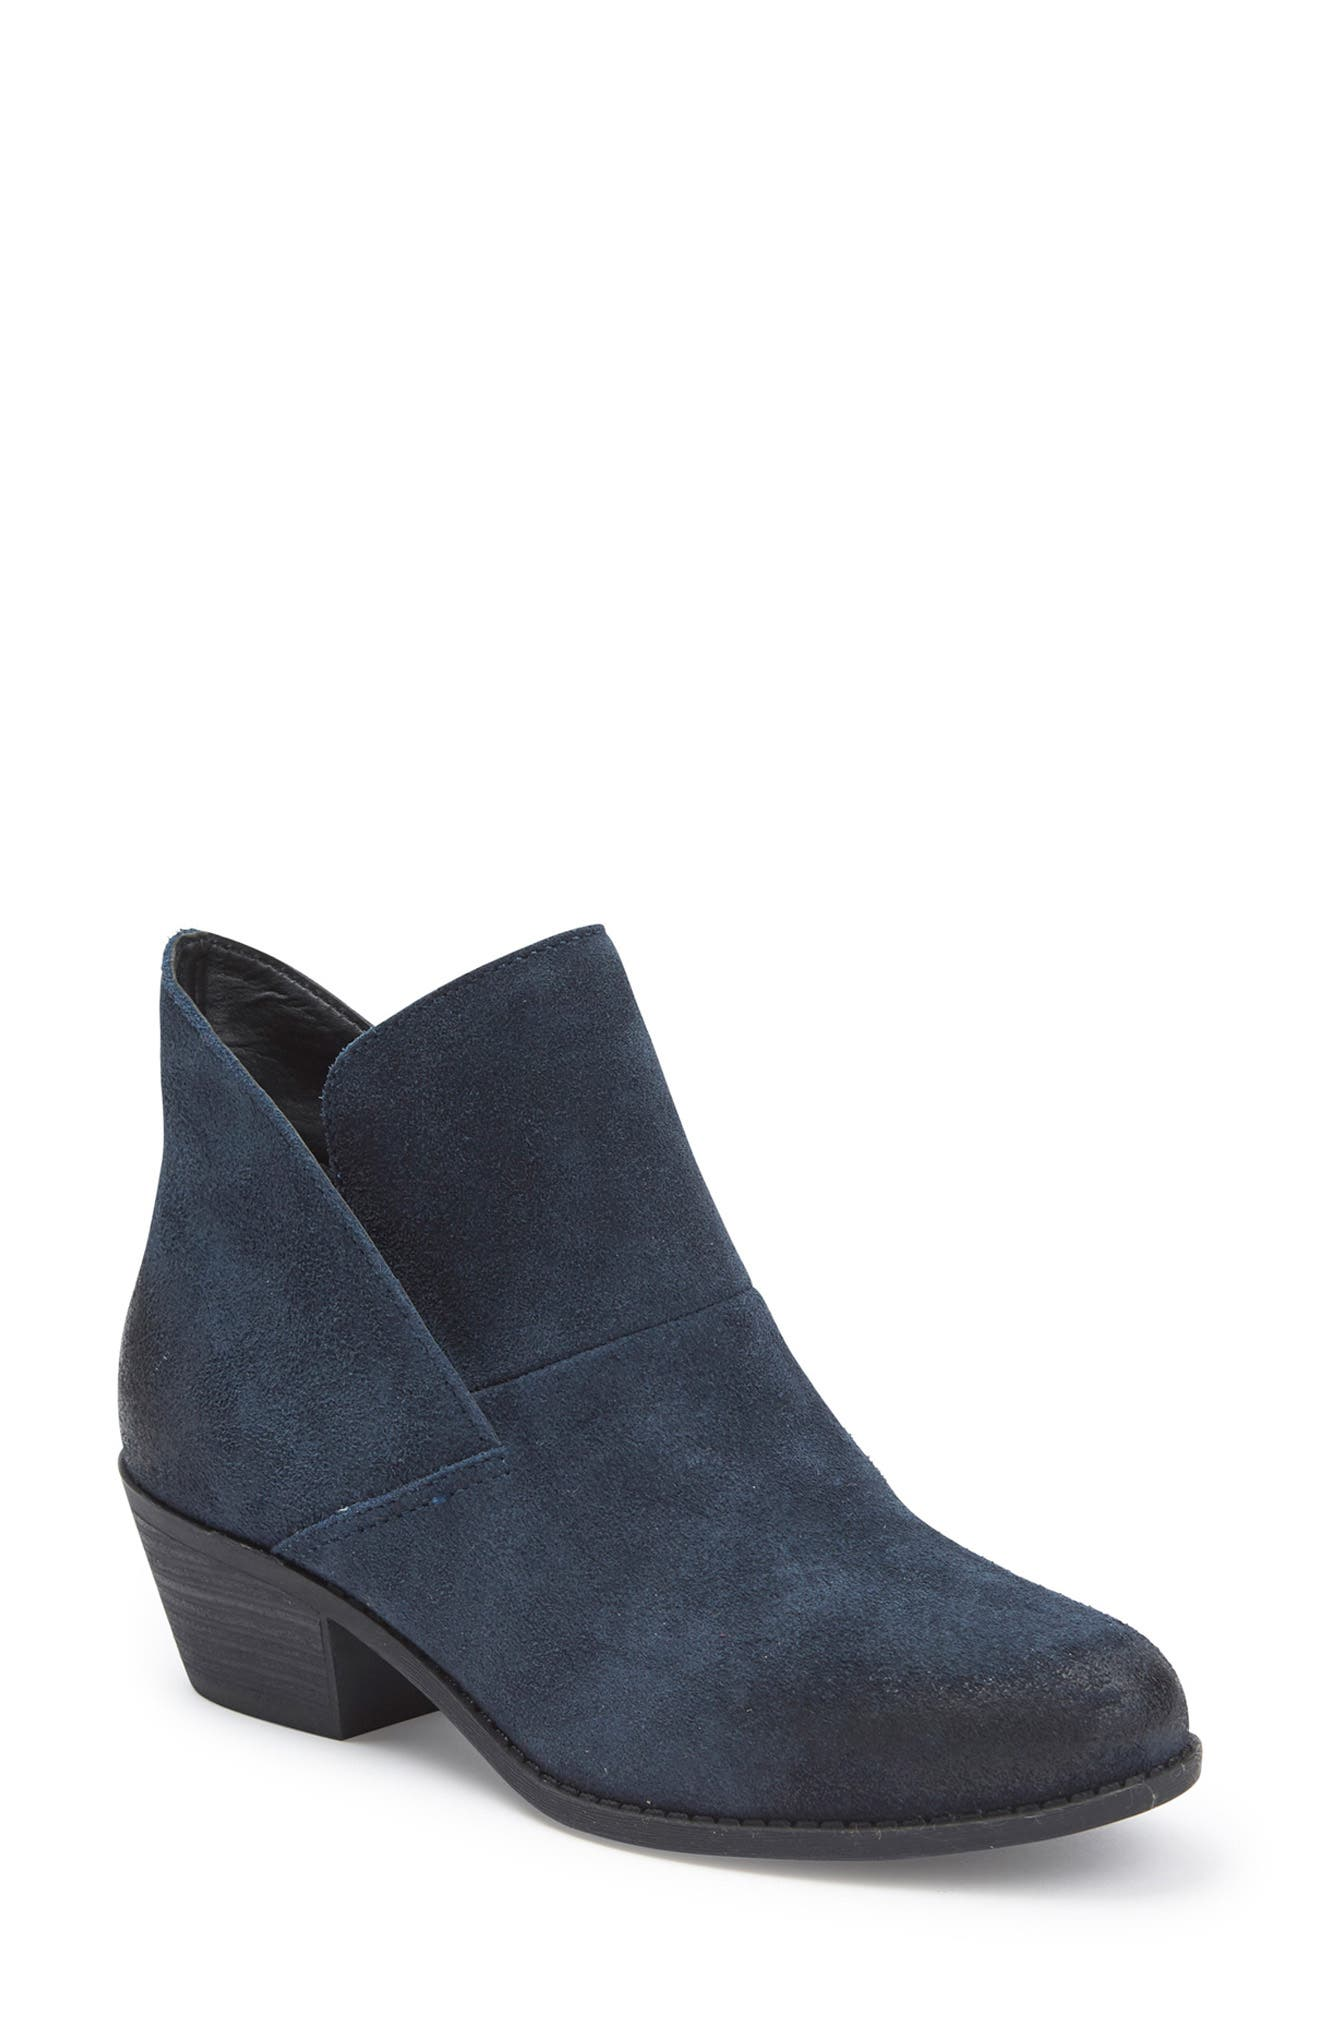 Me Too Zena Ankle Boot (Women)